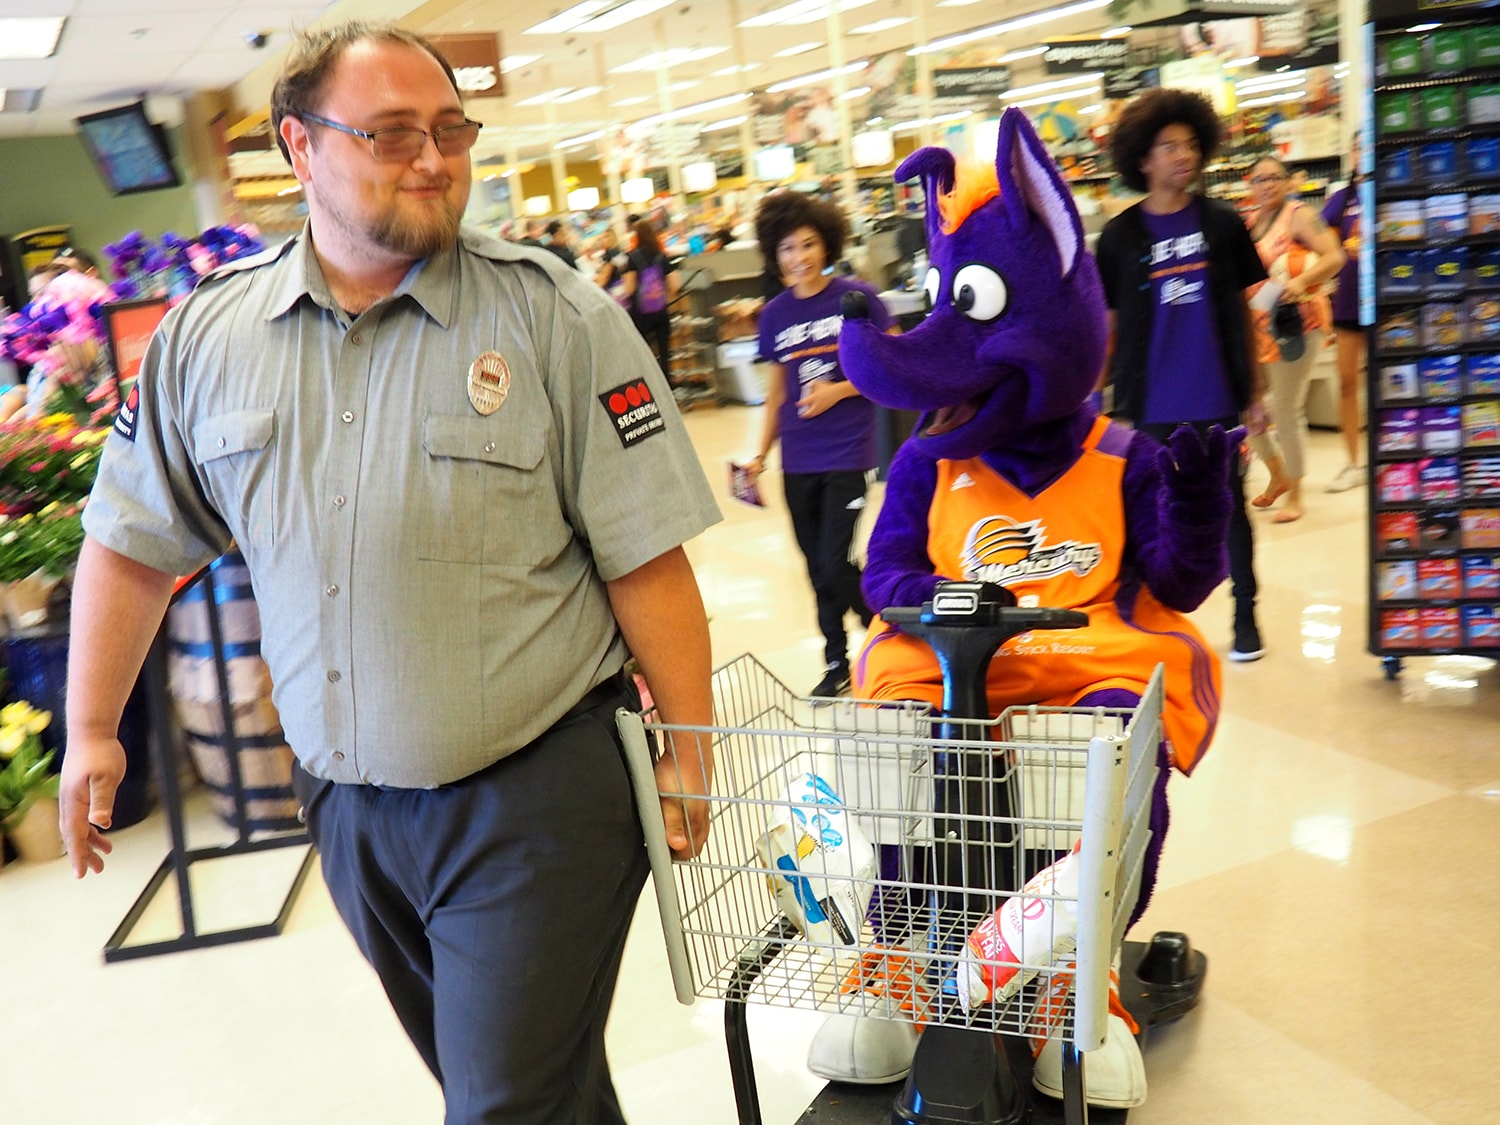 #MercTradingPlaces at Fry's Food Stores